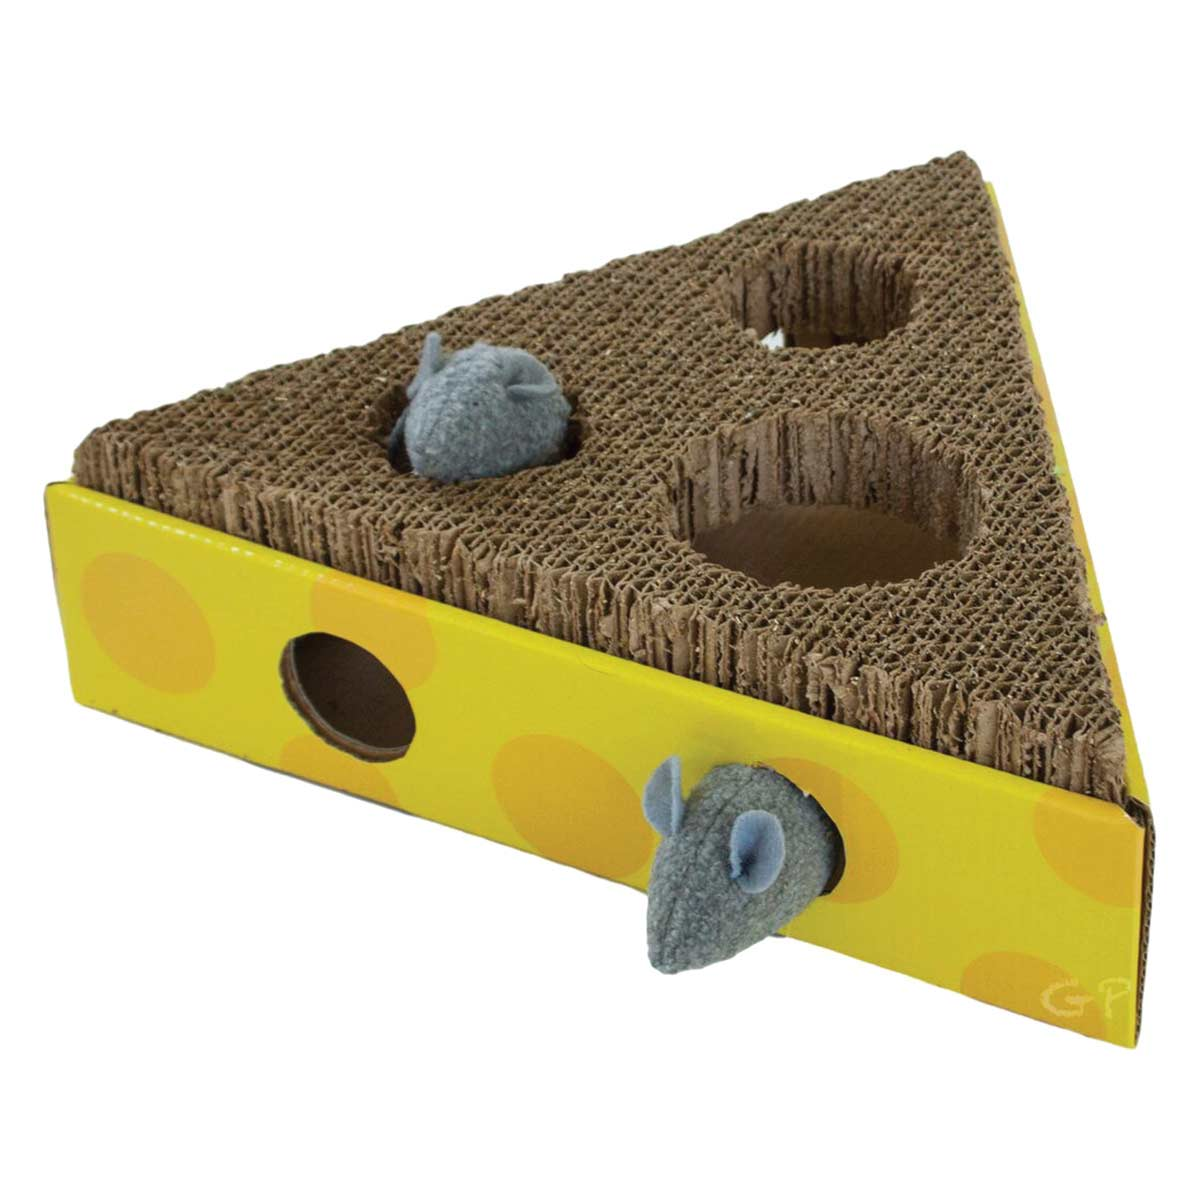 Outward Hound Scratch and Hunt Cheese Wedge Cat Toy